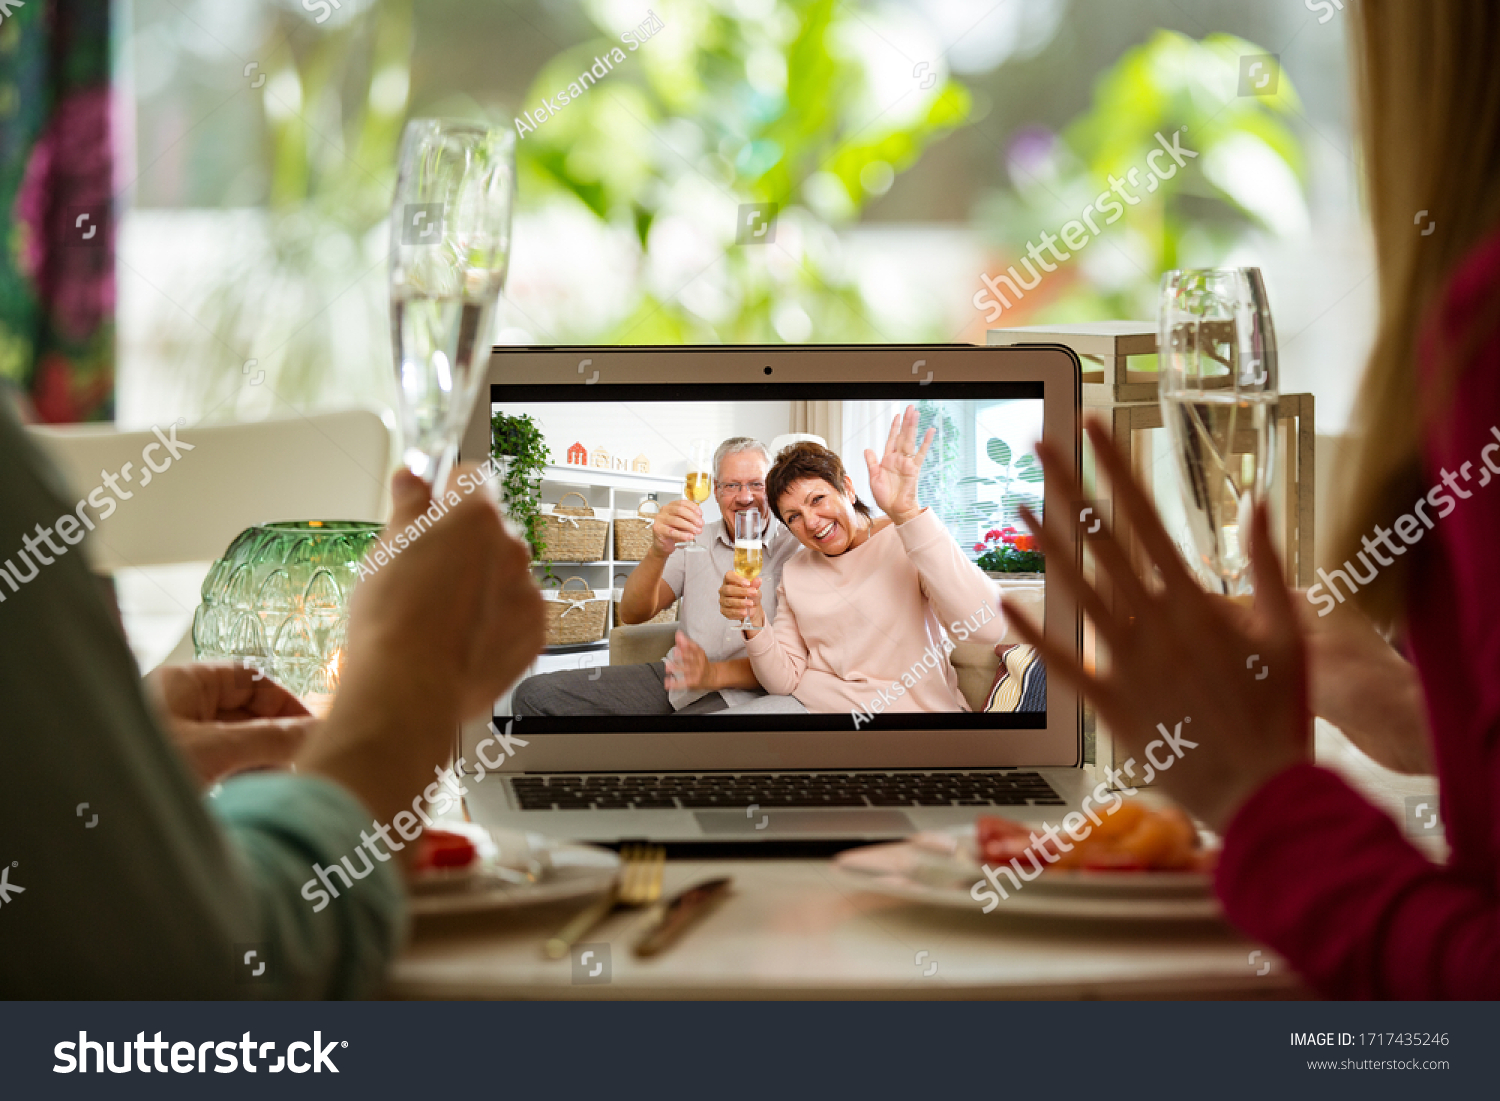 Man and woman sitting at the dining table, having dinner, drinking Champagne and having video call with senior parents on laptop. Staying home, quarantine and social distancing celebration of event.  #1717435246